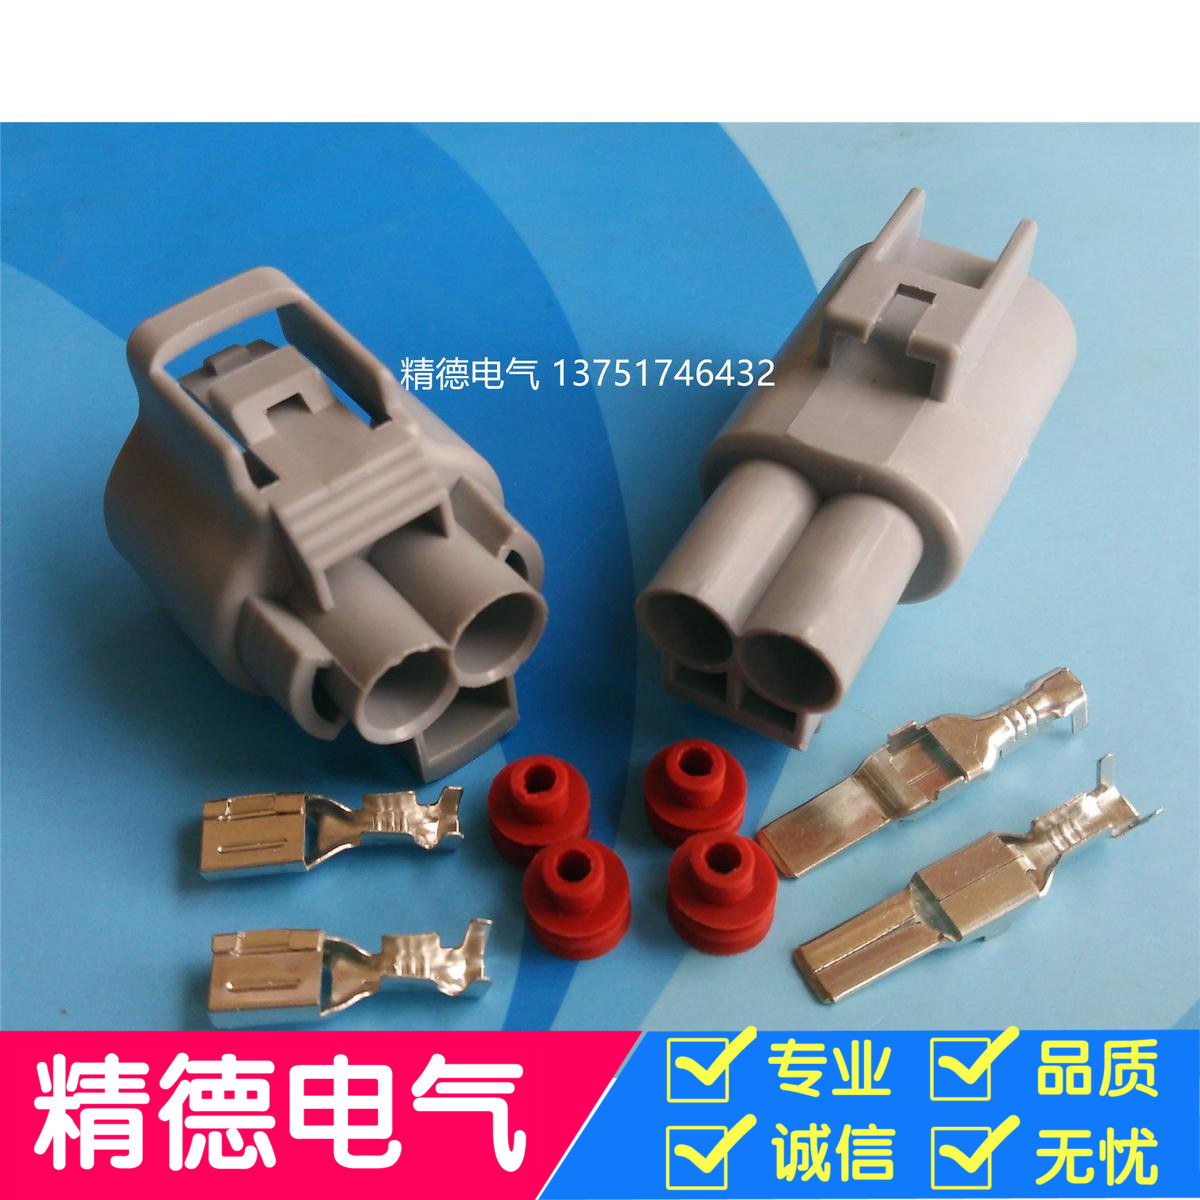 USD 5.48] 2P car waterproof connector connector high current power ...